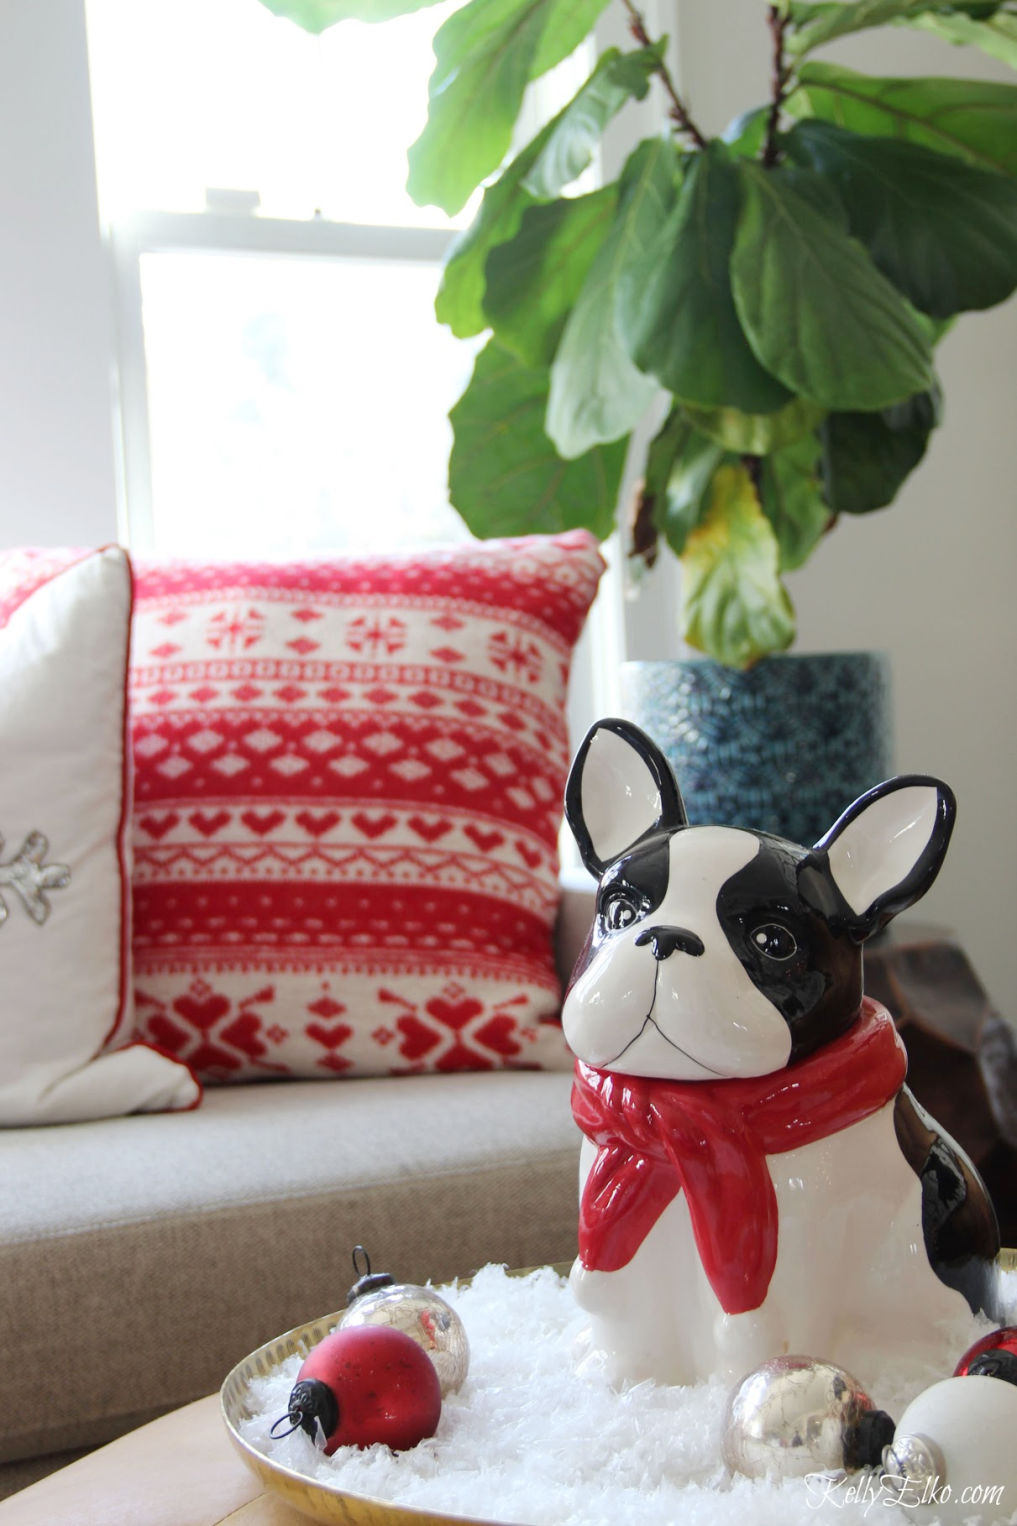 How adorable is this little Boston Terrier cookie jar on a bed of snow for Christmas kellyelko.com #christmas #christmasdecor #christmasdecorating #christmashome #christmastour #diychristmas #christmasideas #christmasmantel #christmastree #christmasornaments #vintagechristmas #farmhousechristmas #colorfulchristmas #creativechristmas #kellyelko #bostonterrier #frenchbulldog #diychristmas